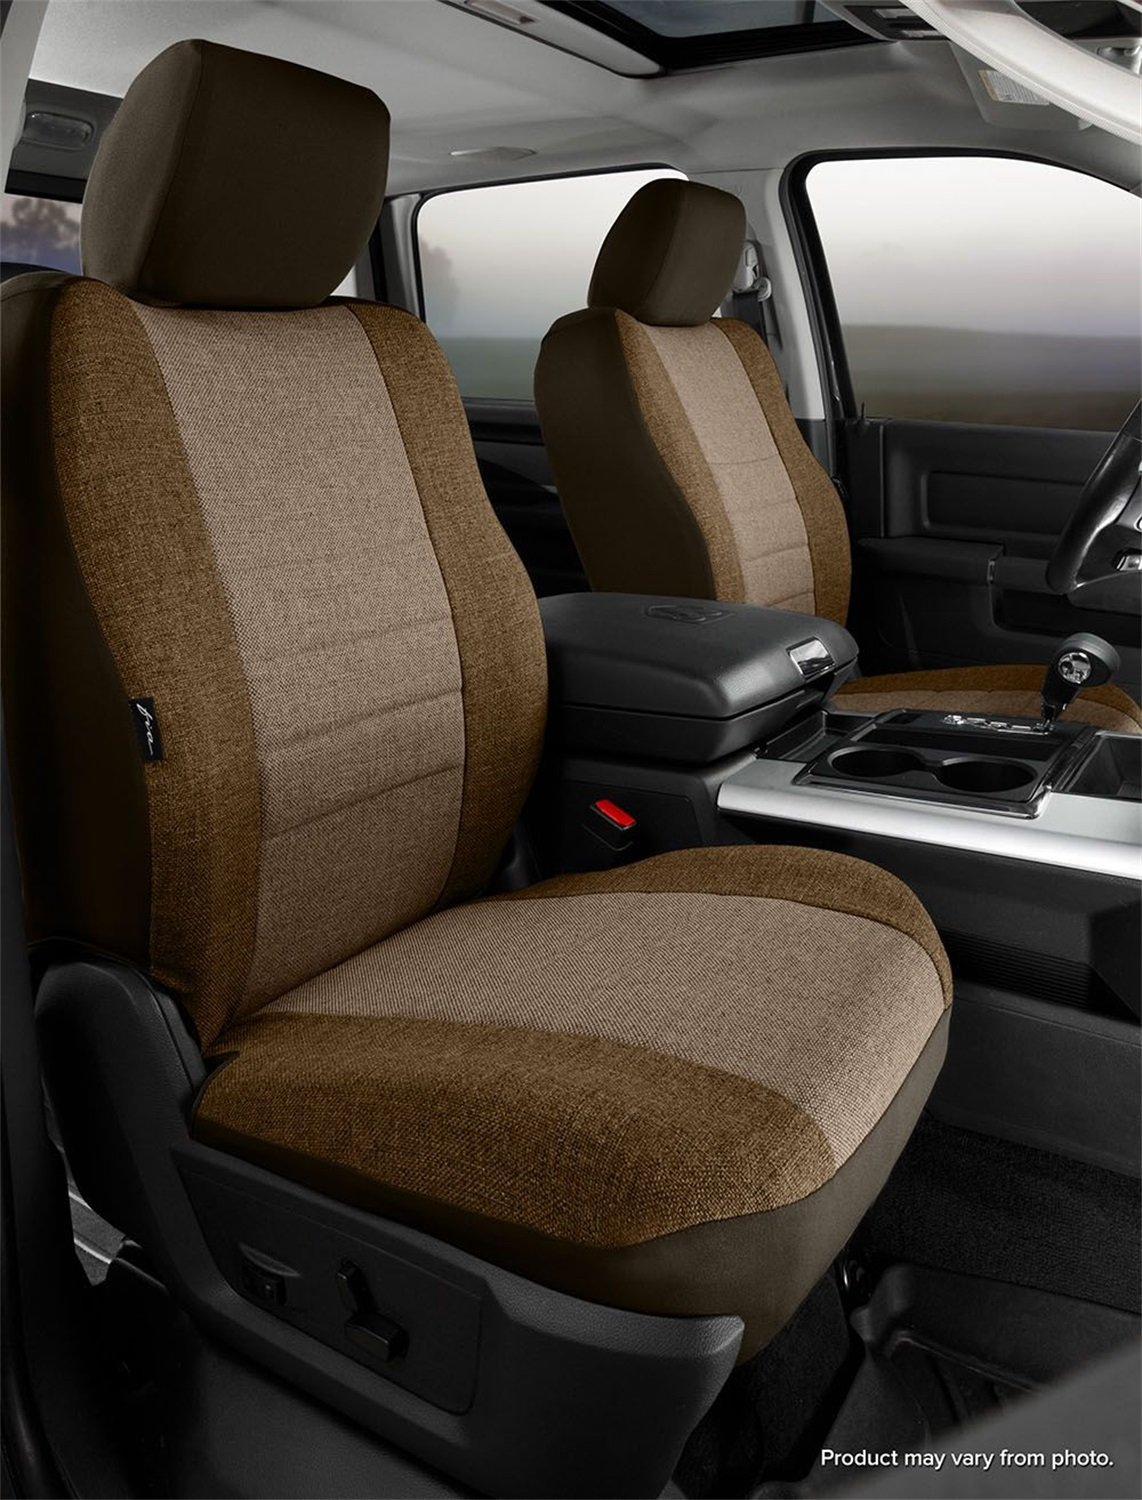 Fia OE37-34 TAUPE Custom Fit Front Seat Cover Bucket Seats - Tweed, (Taupe) by FIA (Image #1)